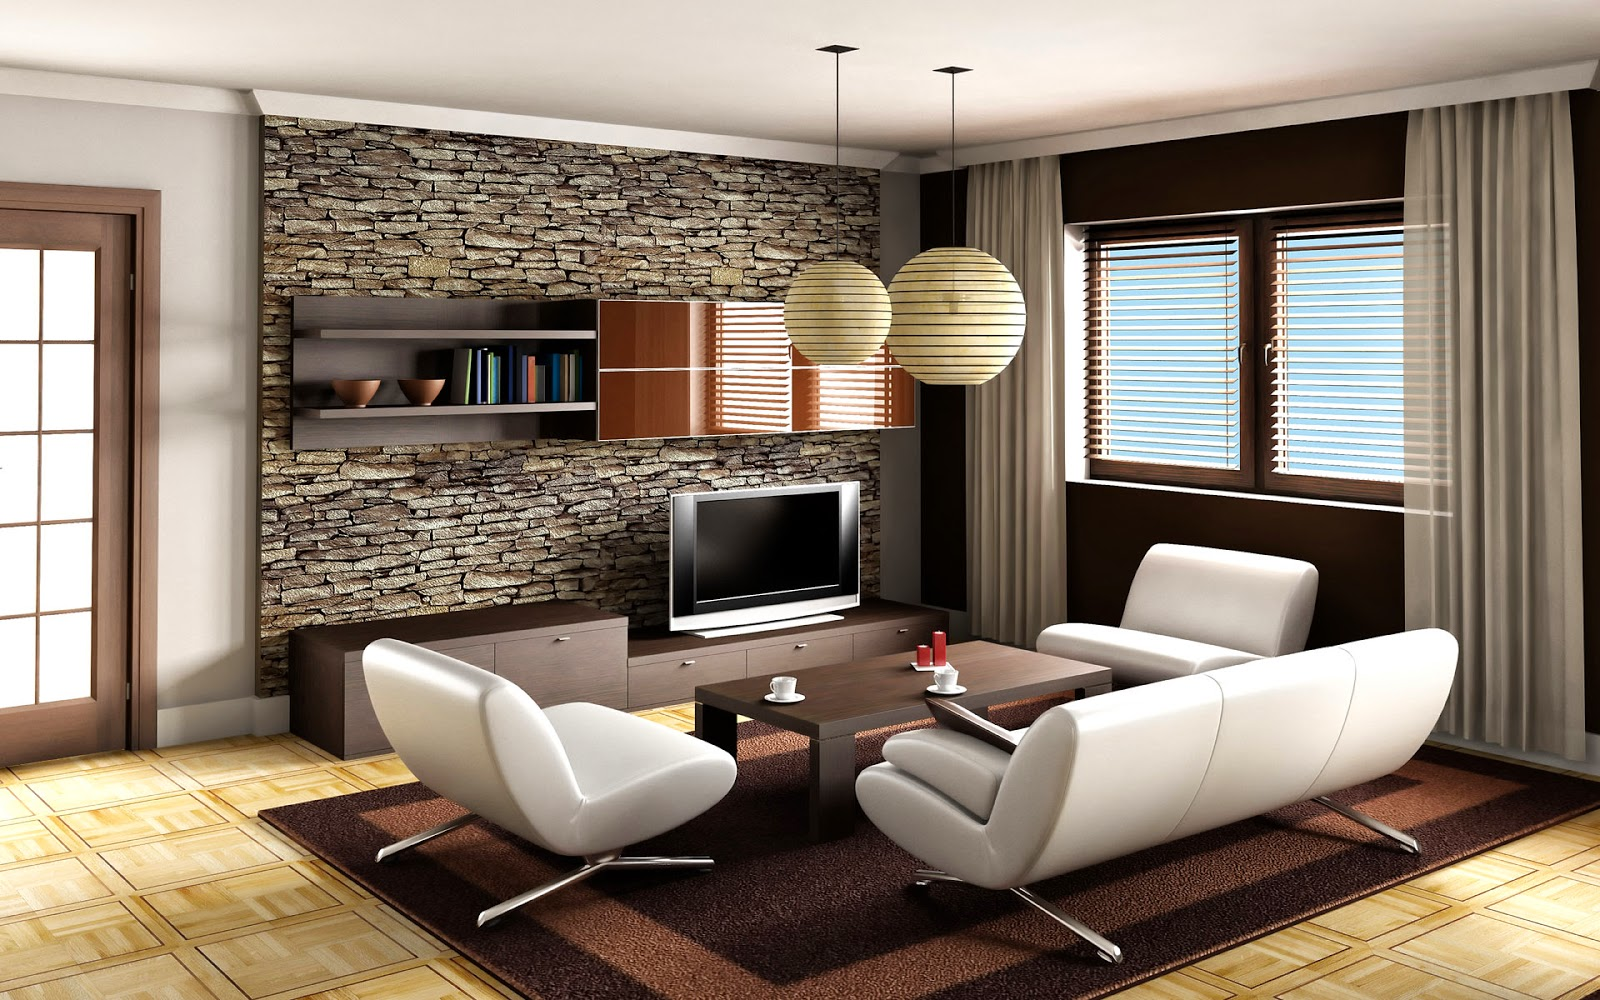 #2 Living Room Decor Ideas Brown Leather Sofa